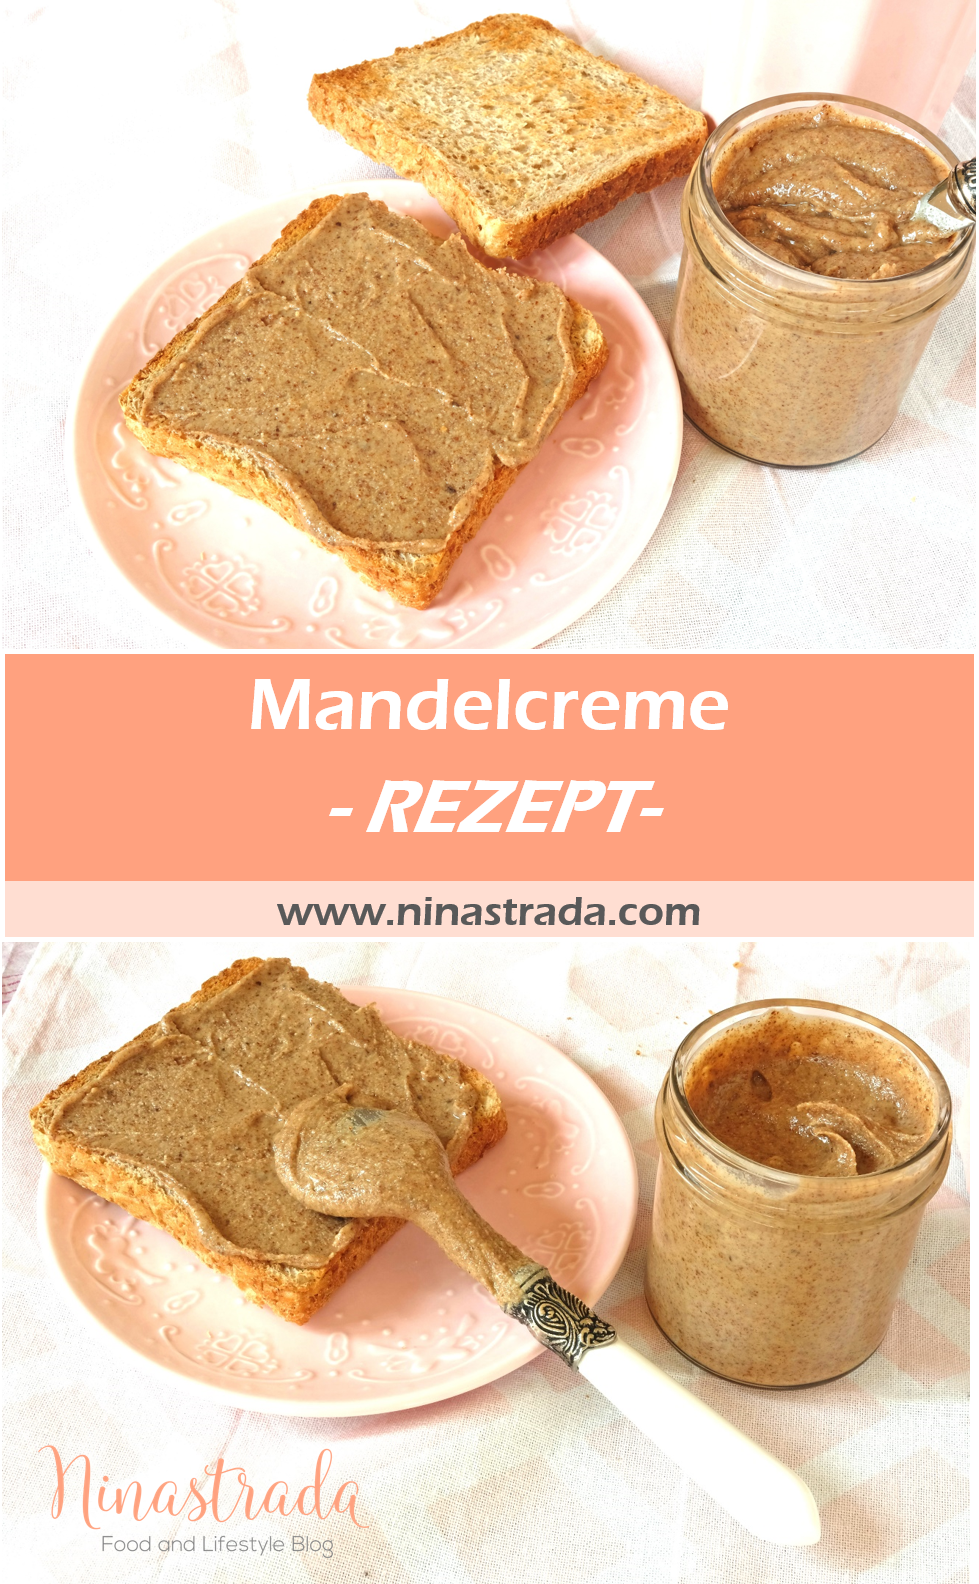 Photo of Gesunde Alternative zu Erdnussbutter: Mandelcreme | Food Blog ninastrada